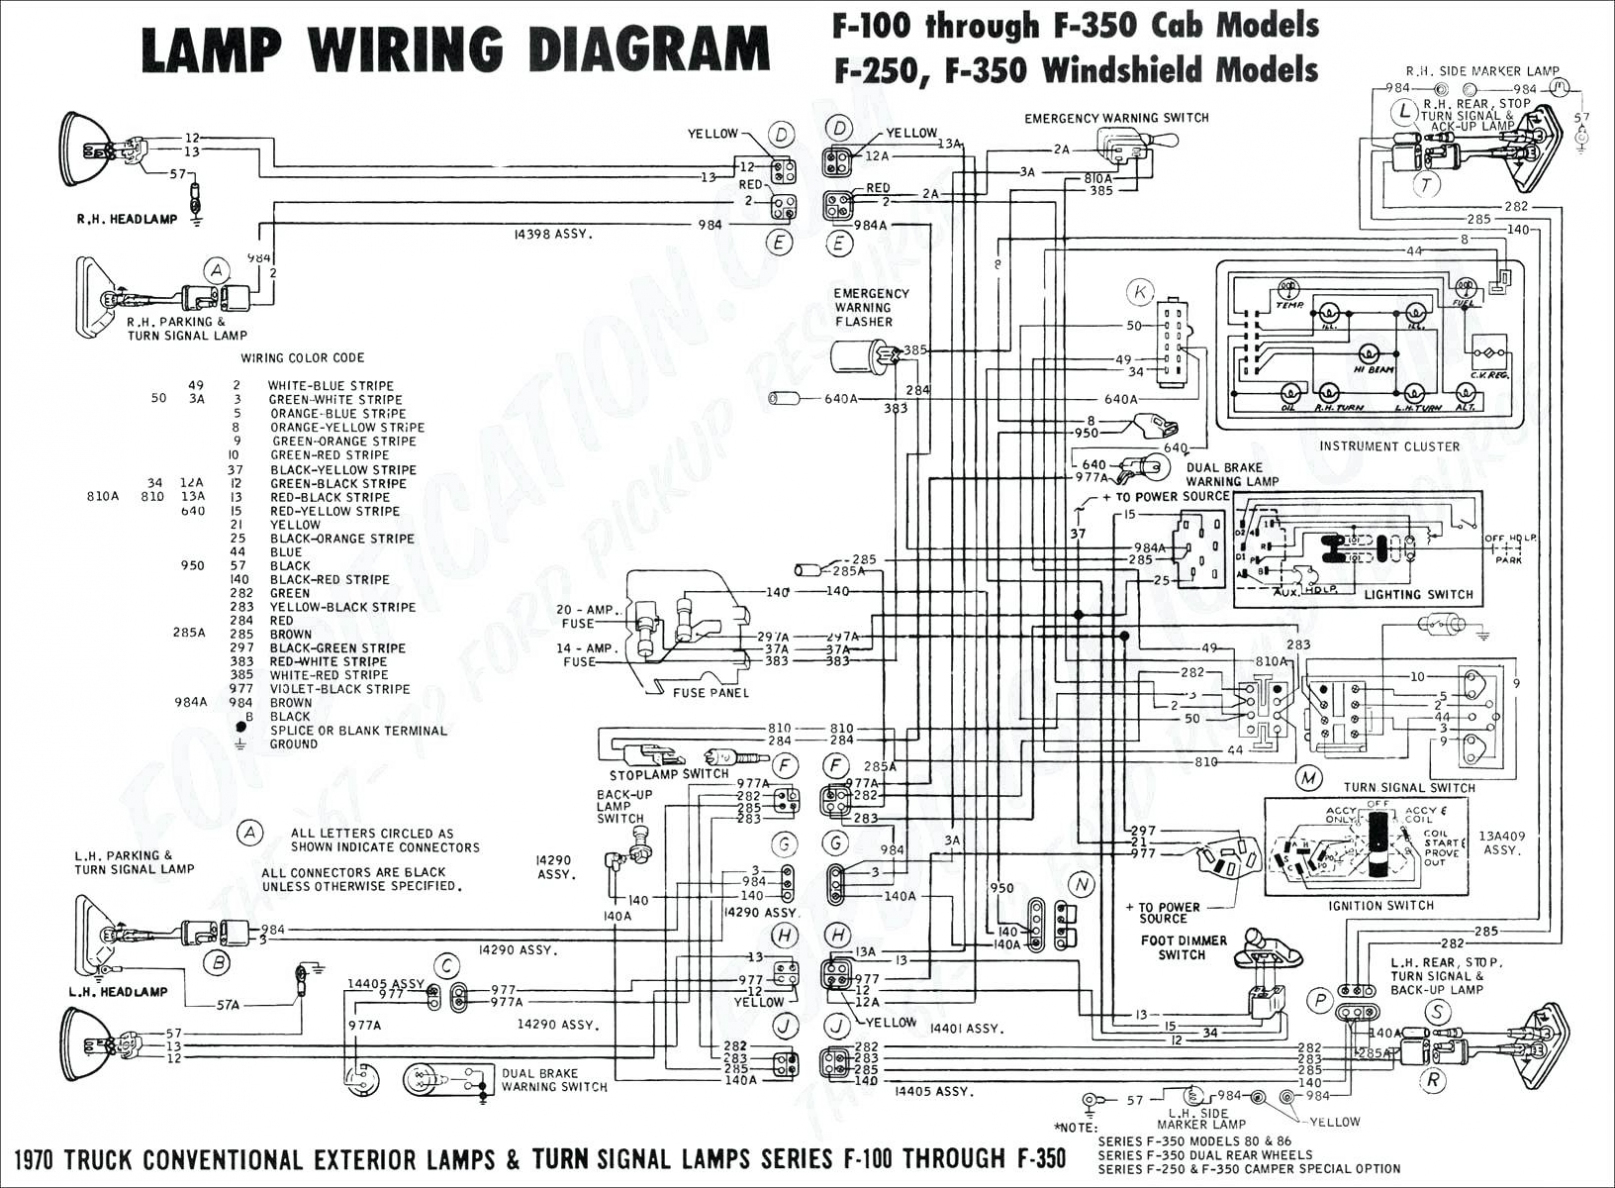 Monaco Rv Ke Light Wiring Diagrams | Wiring Diagram - Monaco Rv Wiring Diagram